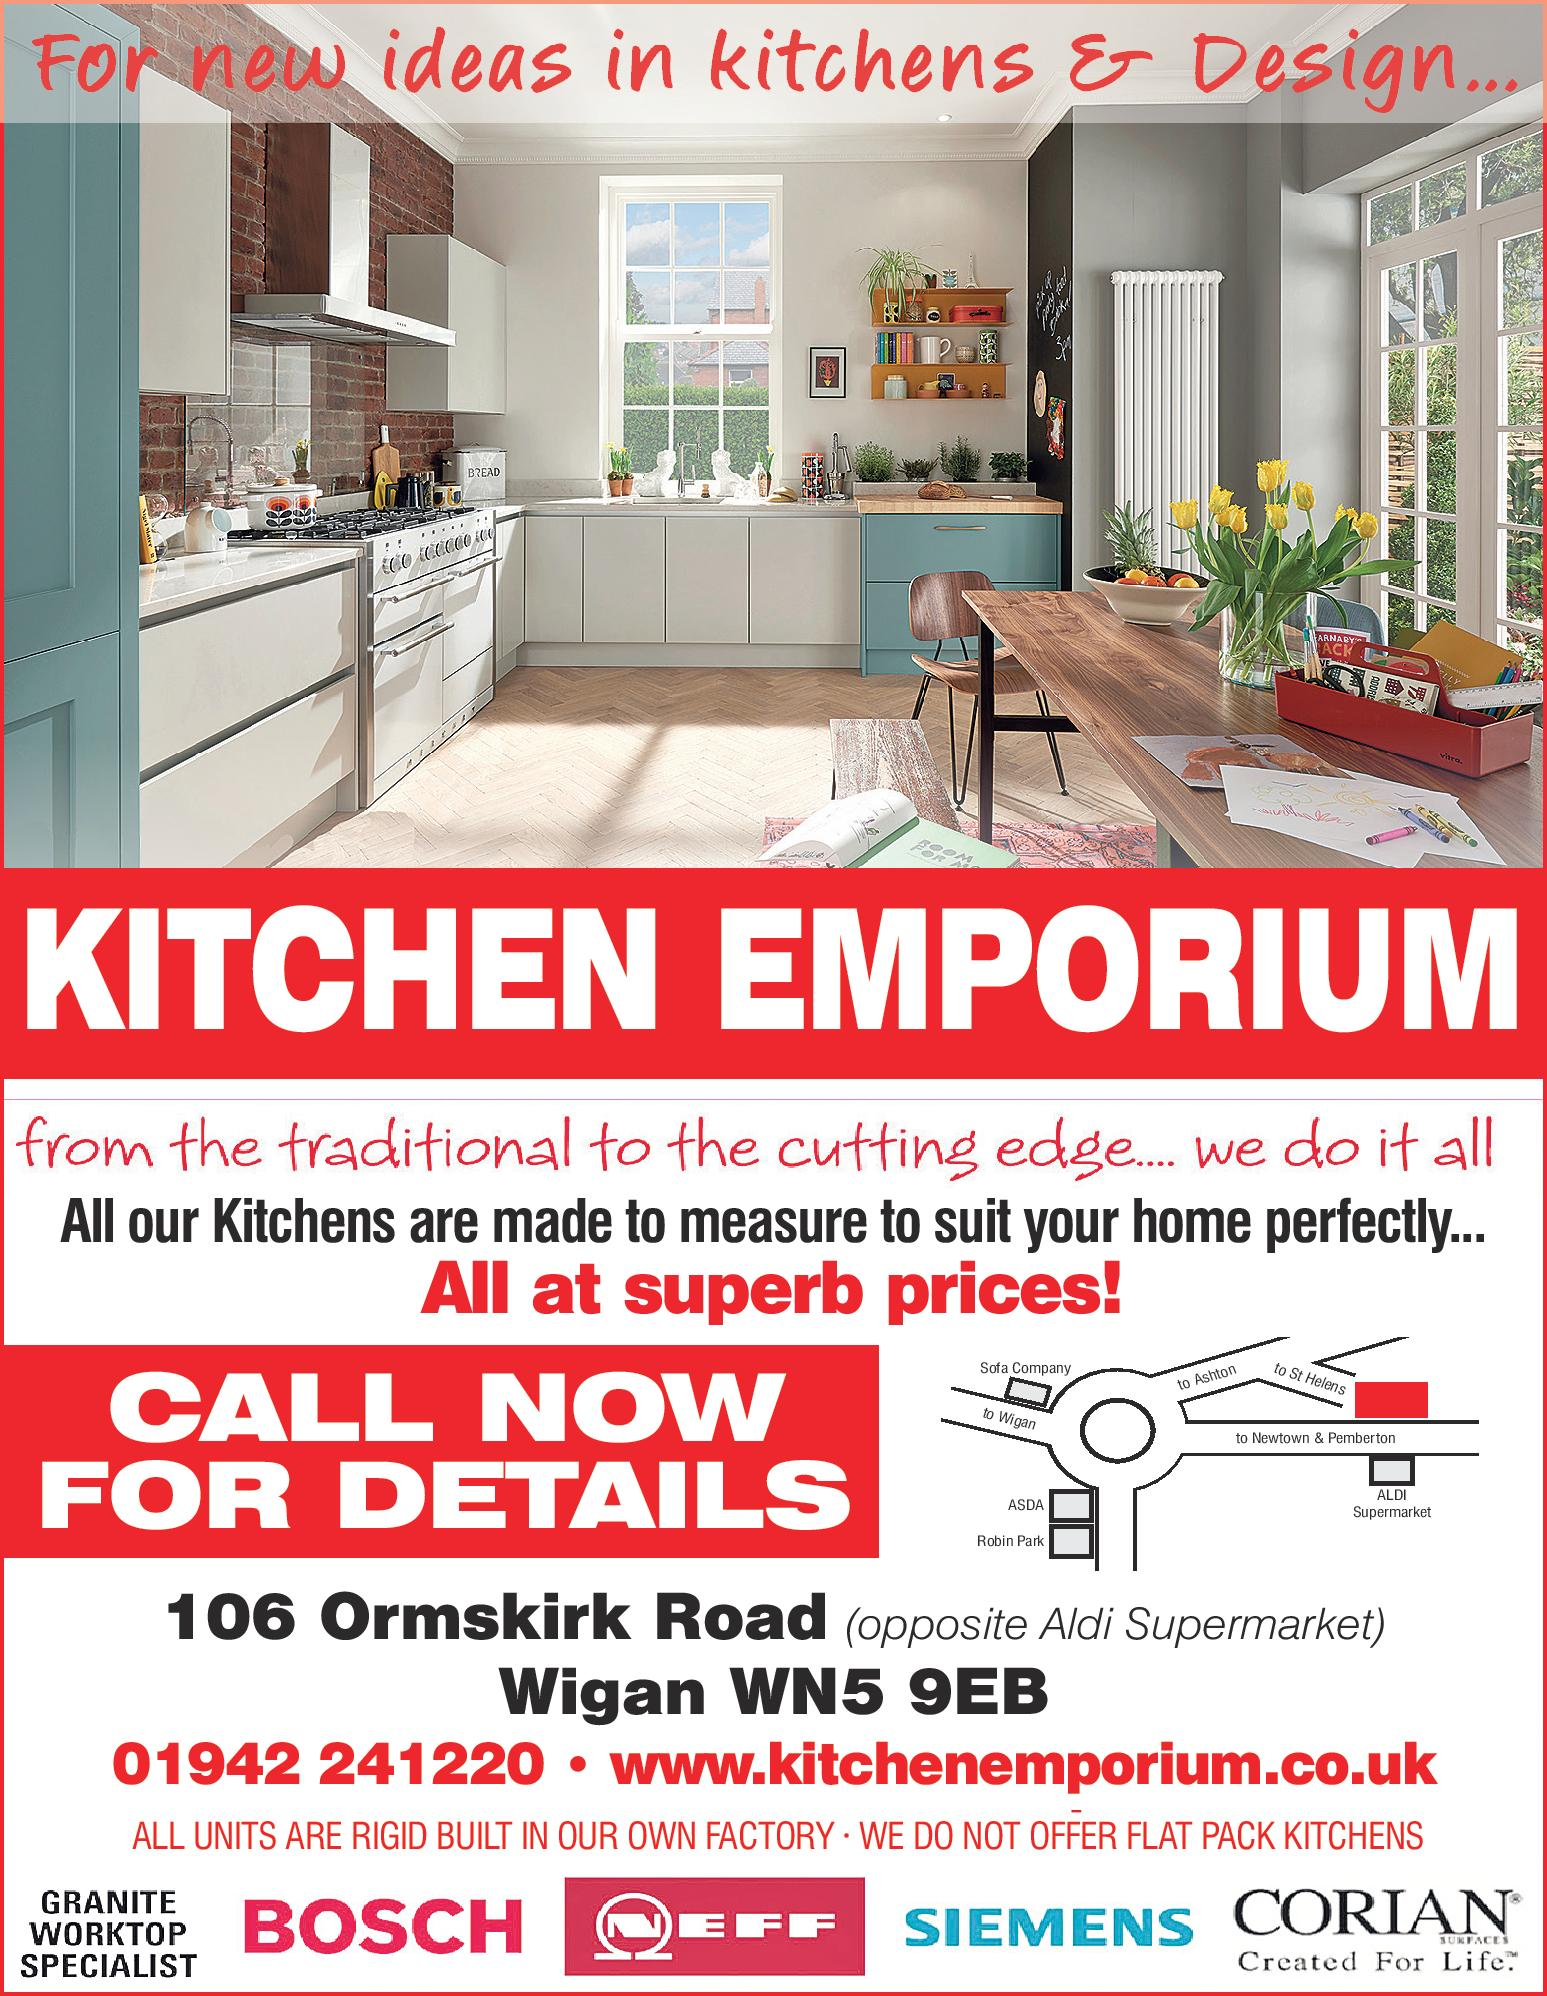 Latest Offer at Kitchen Emporium